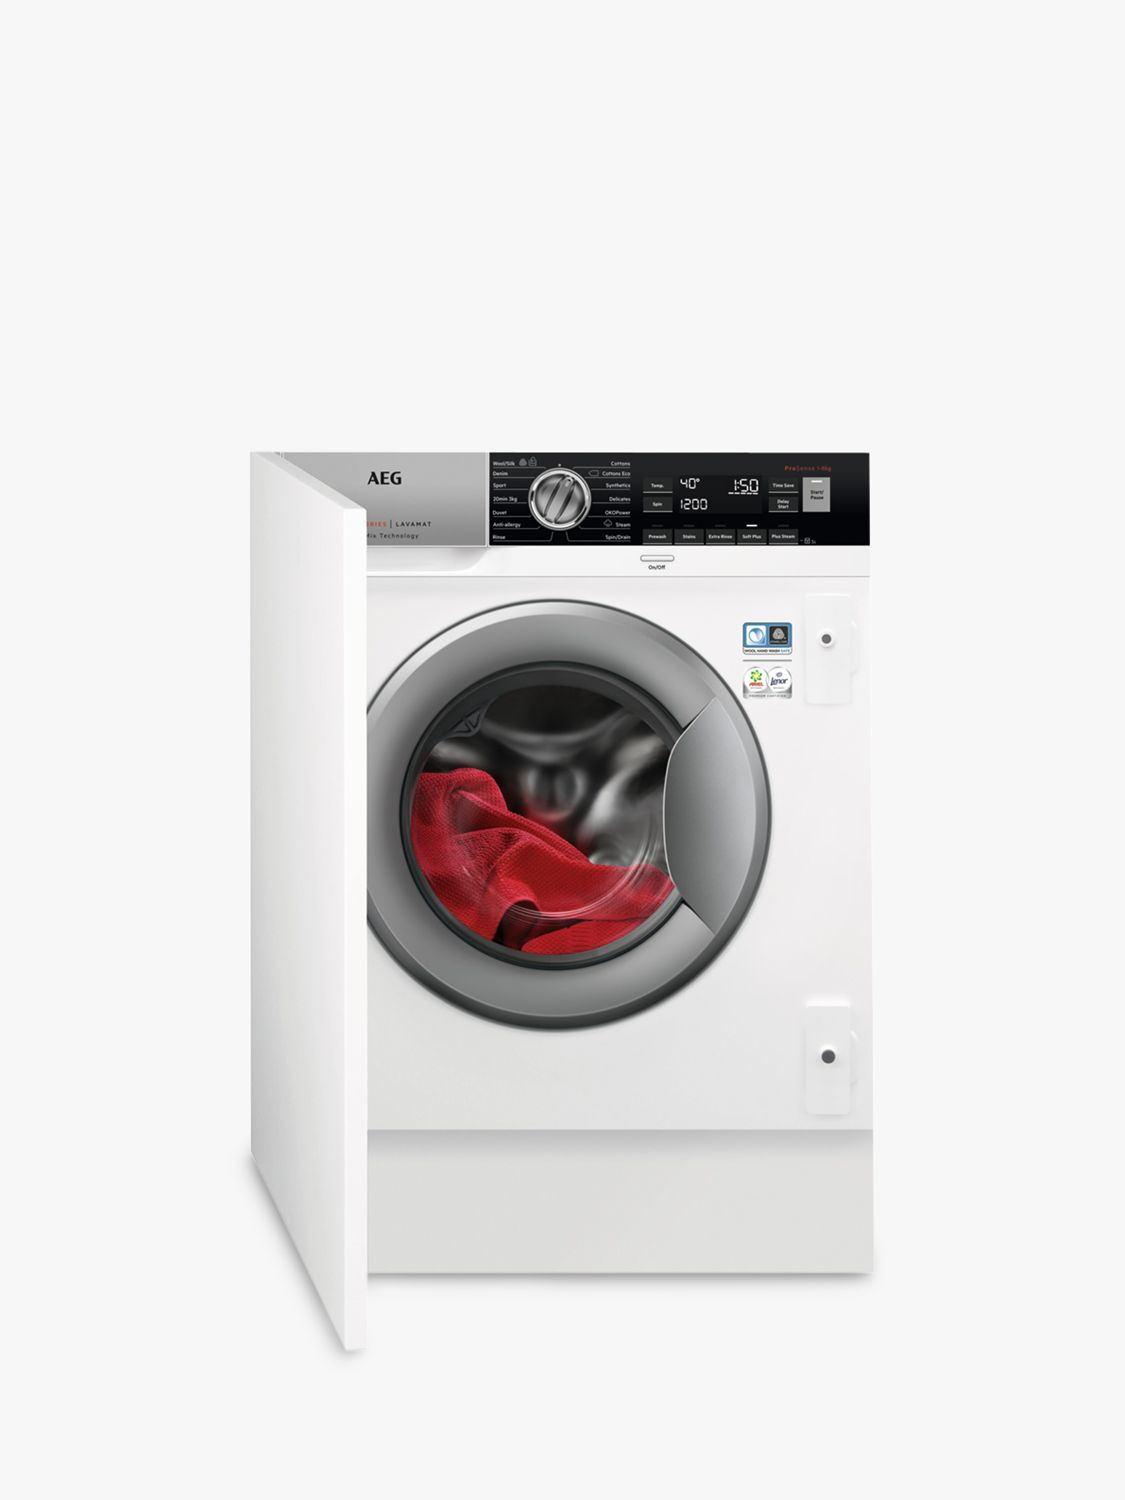 AEG AEG ProSteam Technology L8FC8432BI Integrated Washing Machine, 8kg Load, A+++ Energy Rating, 1400rpm Spin, White